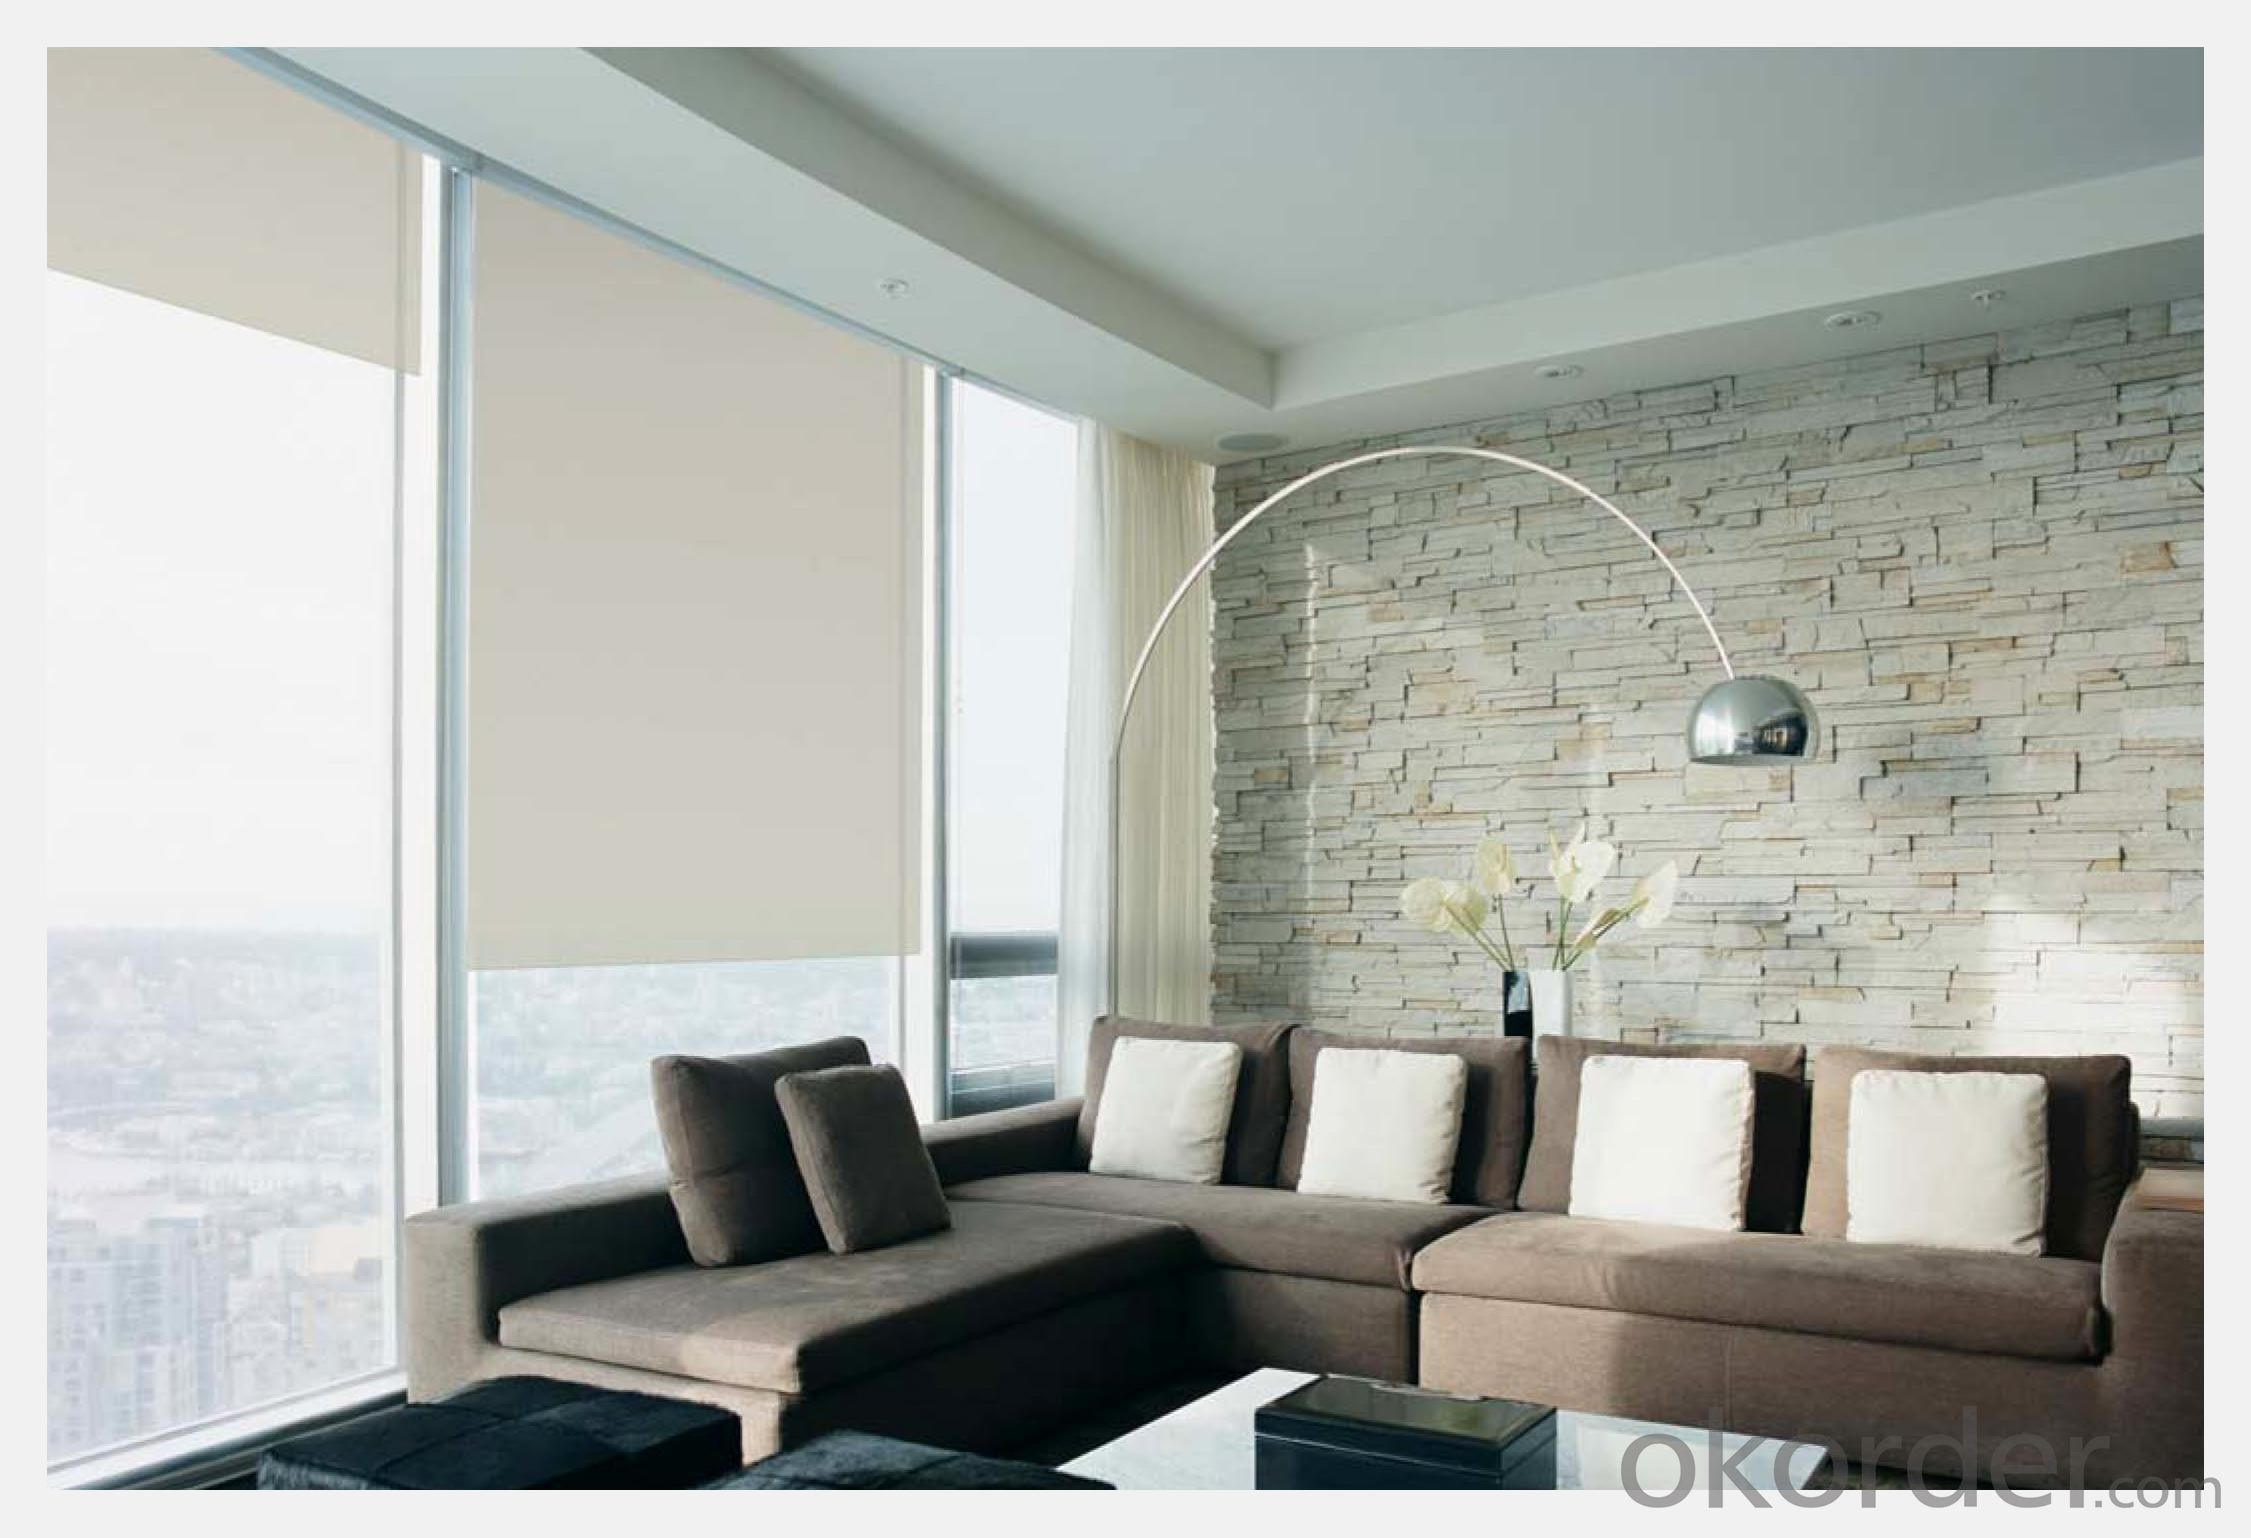 Buy One Way Vision Roller Blinds M Otorised Sunscreen